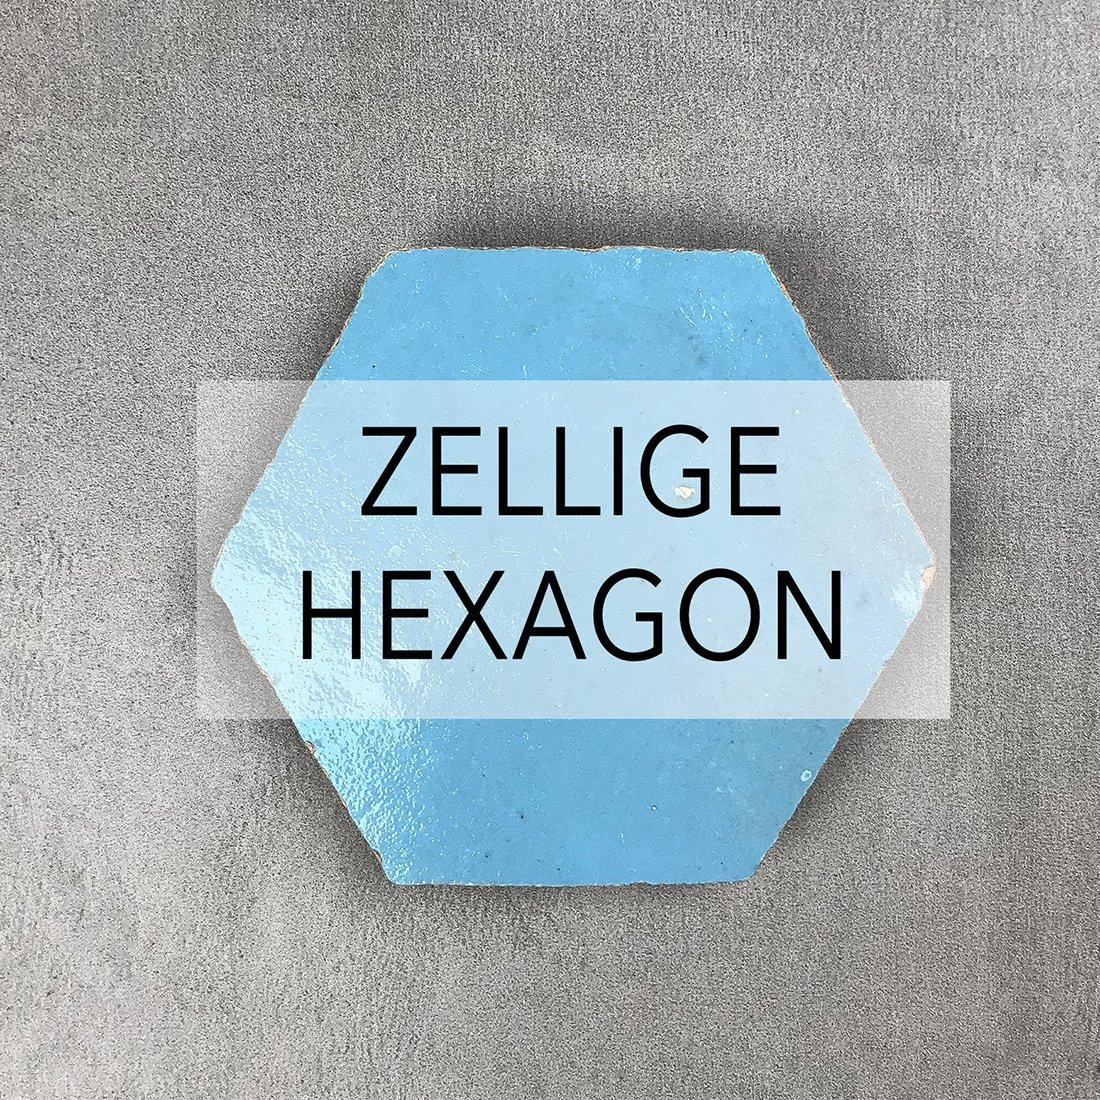 Zellige Hexagon Tiles